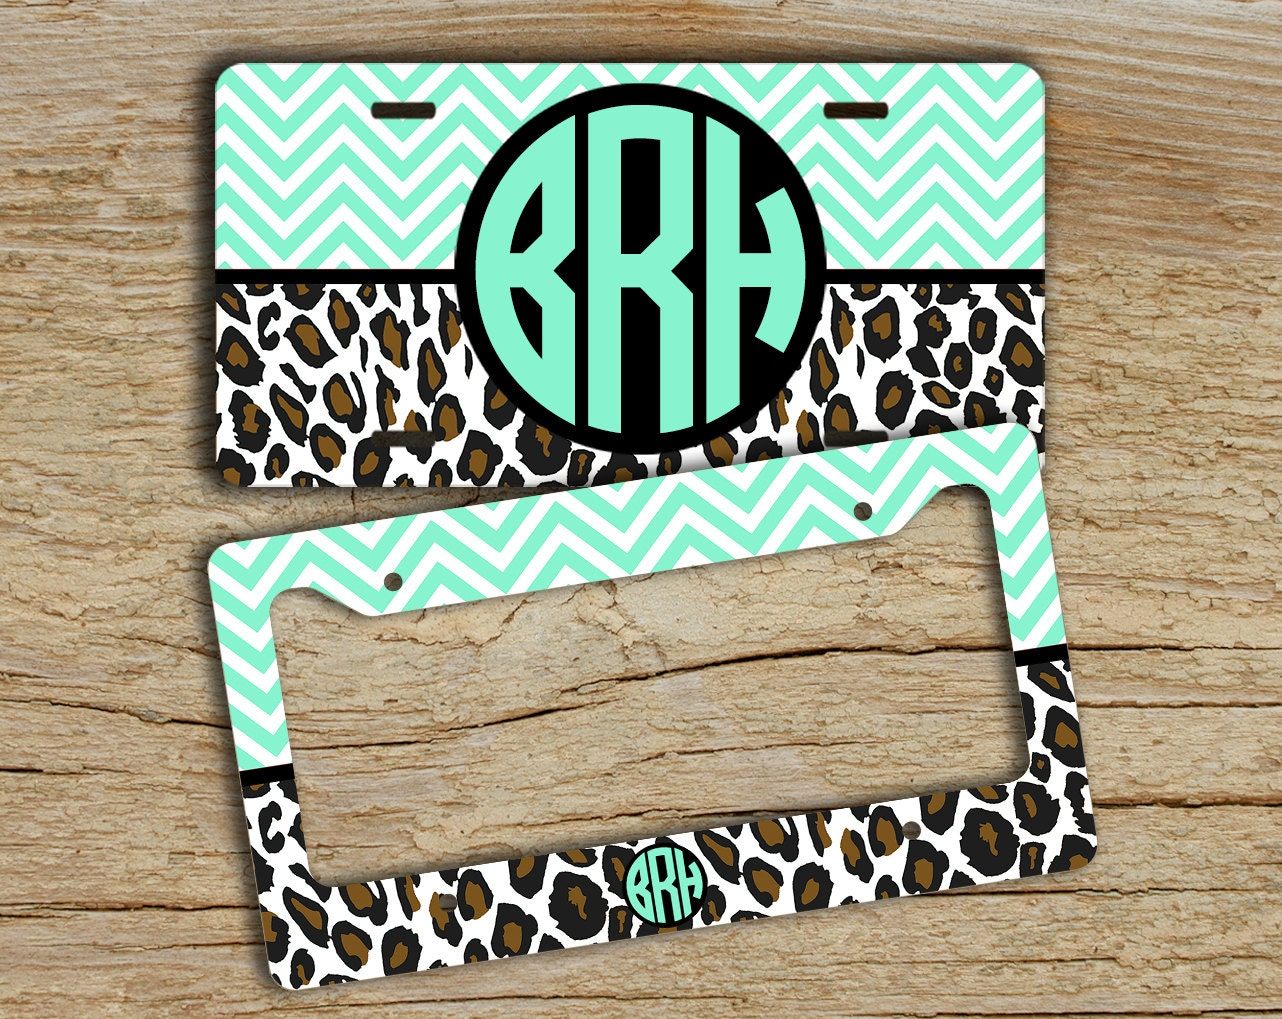 Car Tags: BFF Gifts Monogram License Plate Or Frame Front Car Tag